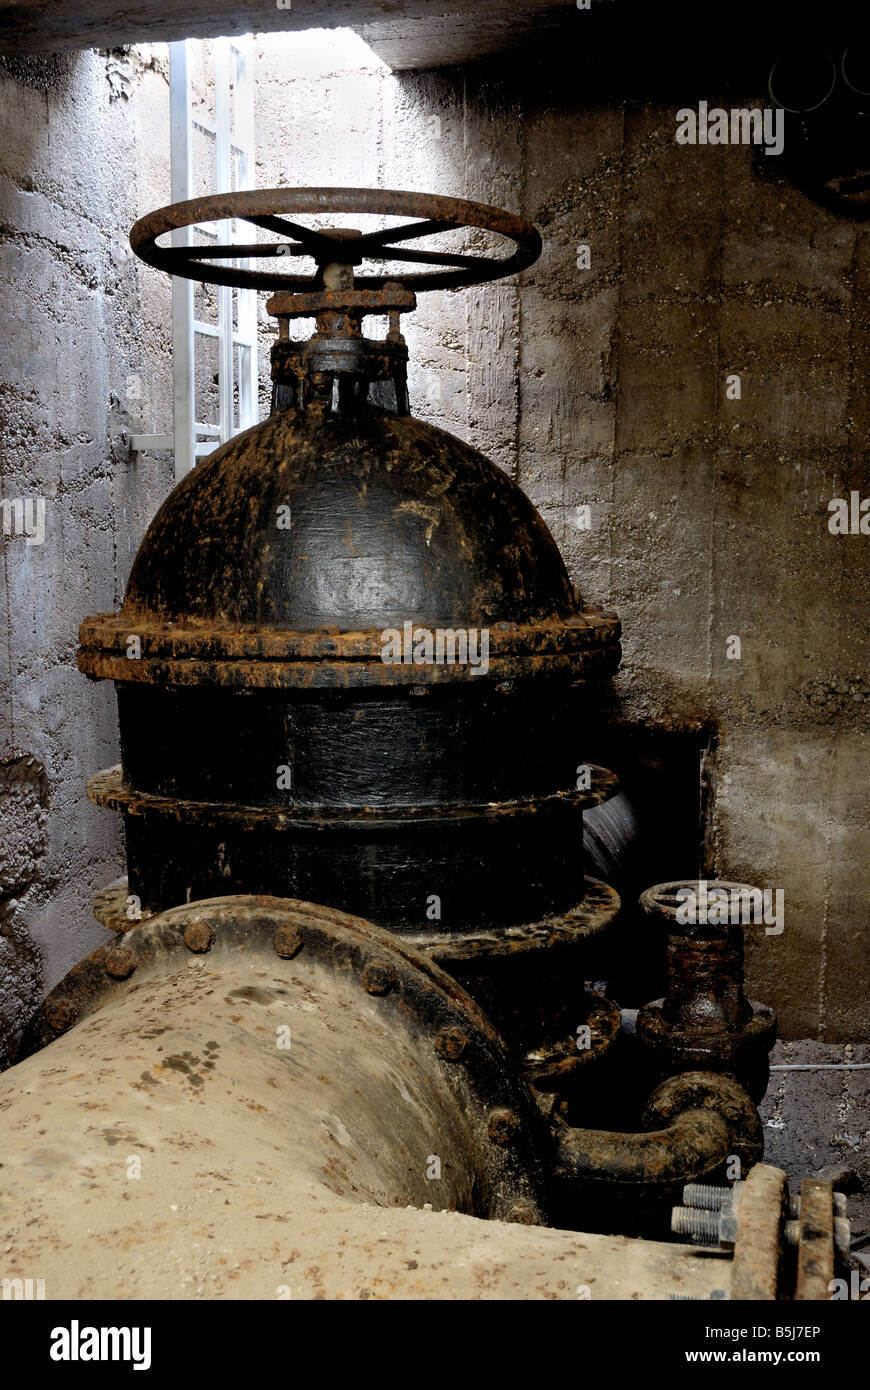 Water valve in the fresh water supply system of city Ljubljana. Underground shot with daylight at the back. - Stock Image